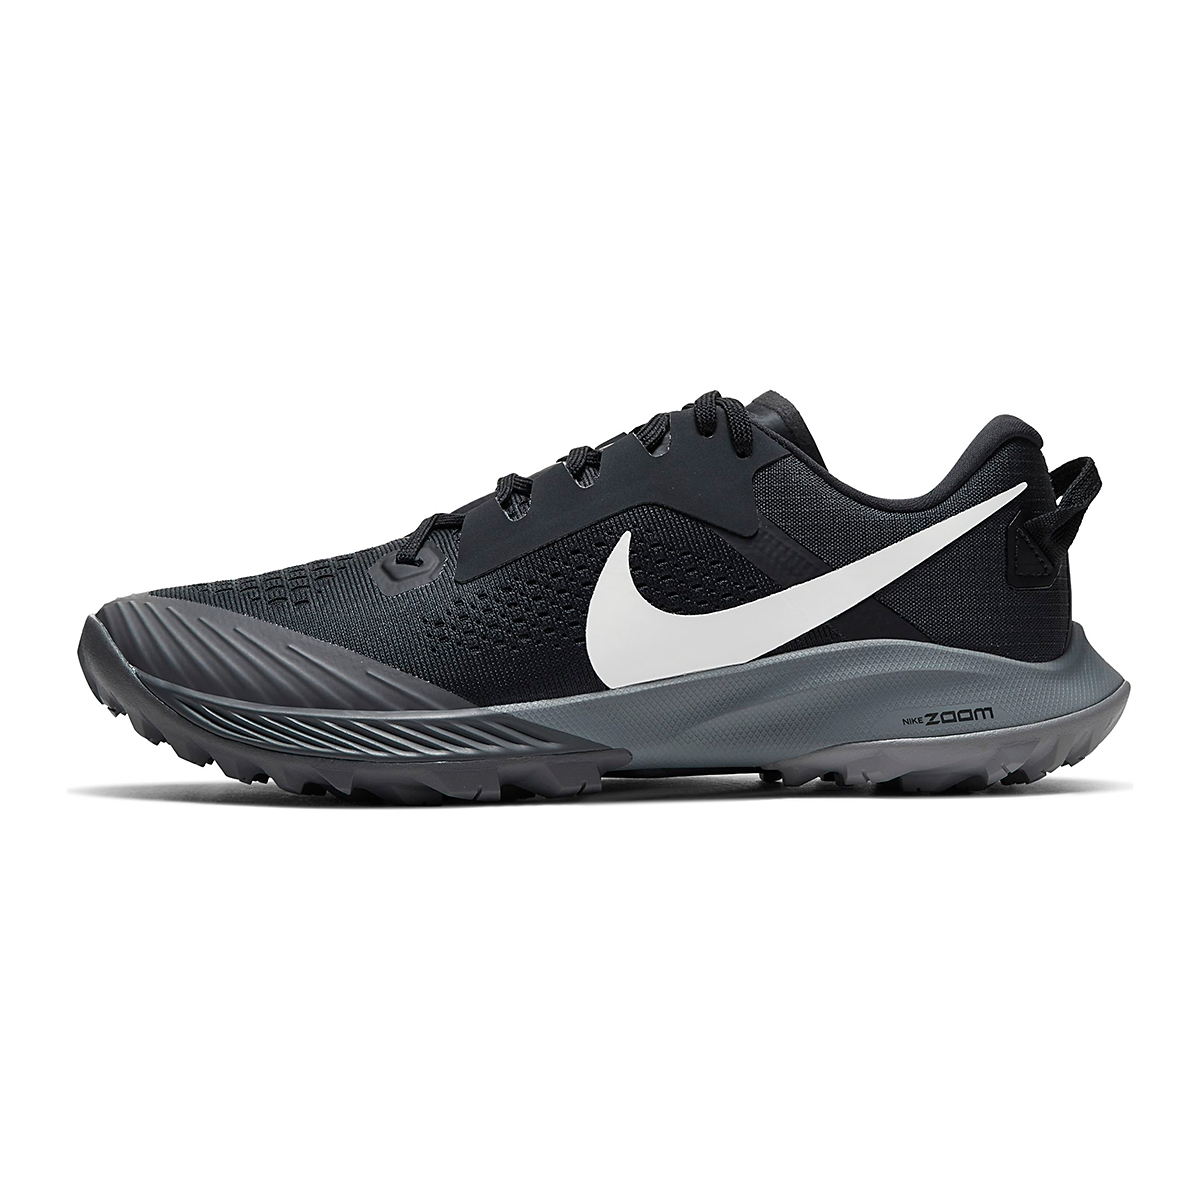 Women's Nike Air Zoom Terra Kiger 6 Trail Running Shoe - Color: Off Noir/Black/Iron Grey/Spruce Aura - Size: 5 - Width: Regular, Off Noir/Black/Iron Grey/Spruce Aura, large, image 3